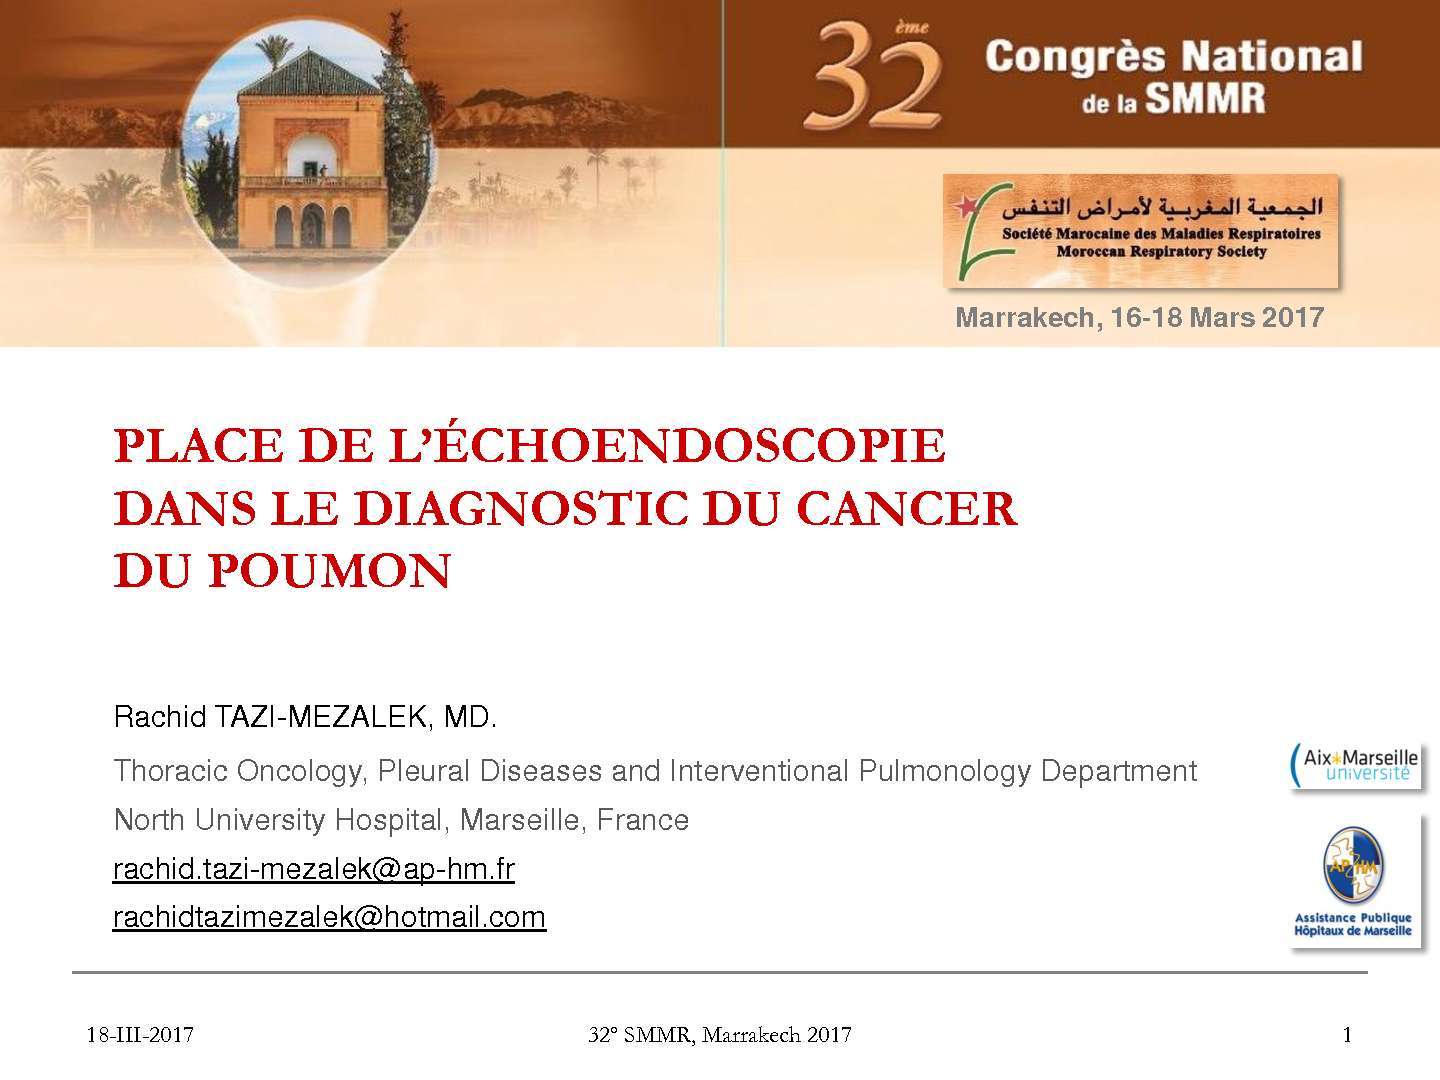 Place de l'echo endoscopie dans le diagnostic du cancer du poumon. R. TAZI MEZAlEK (Marseille)